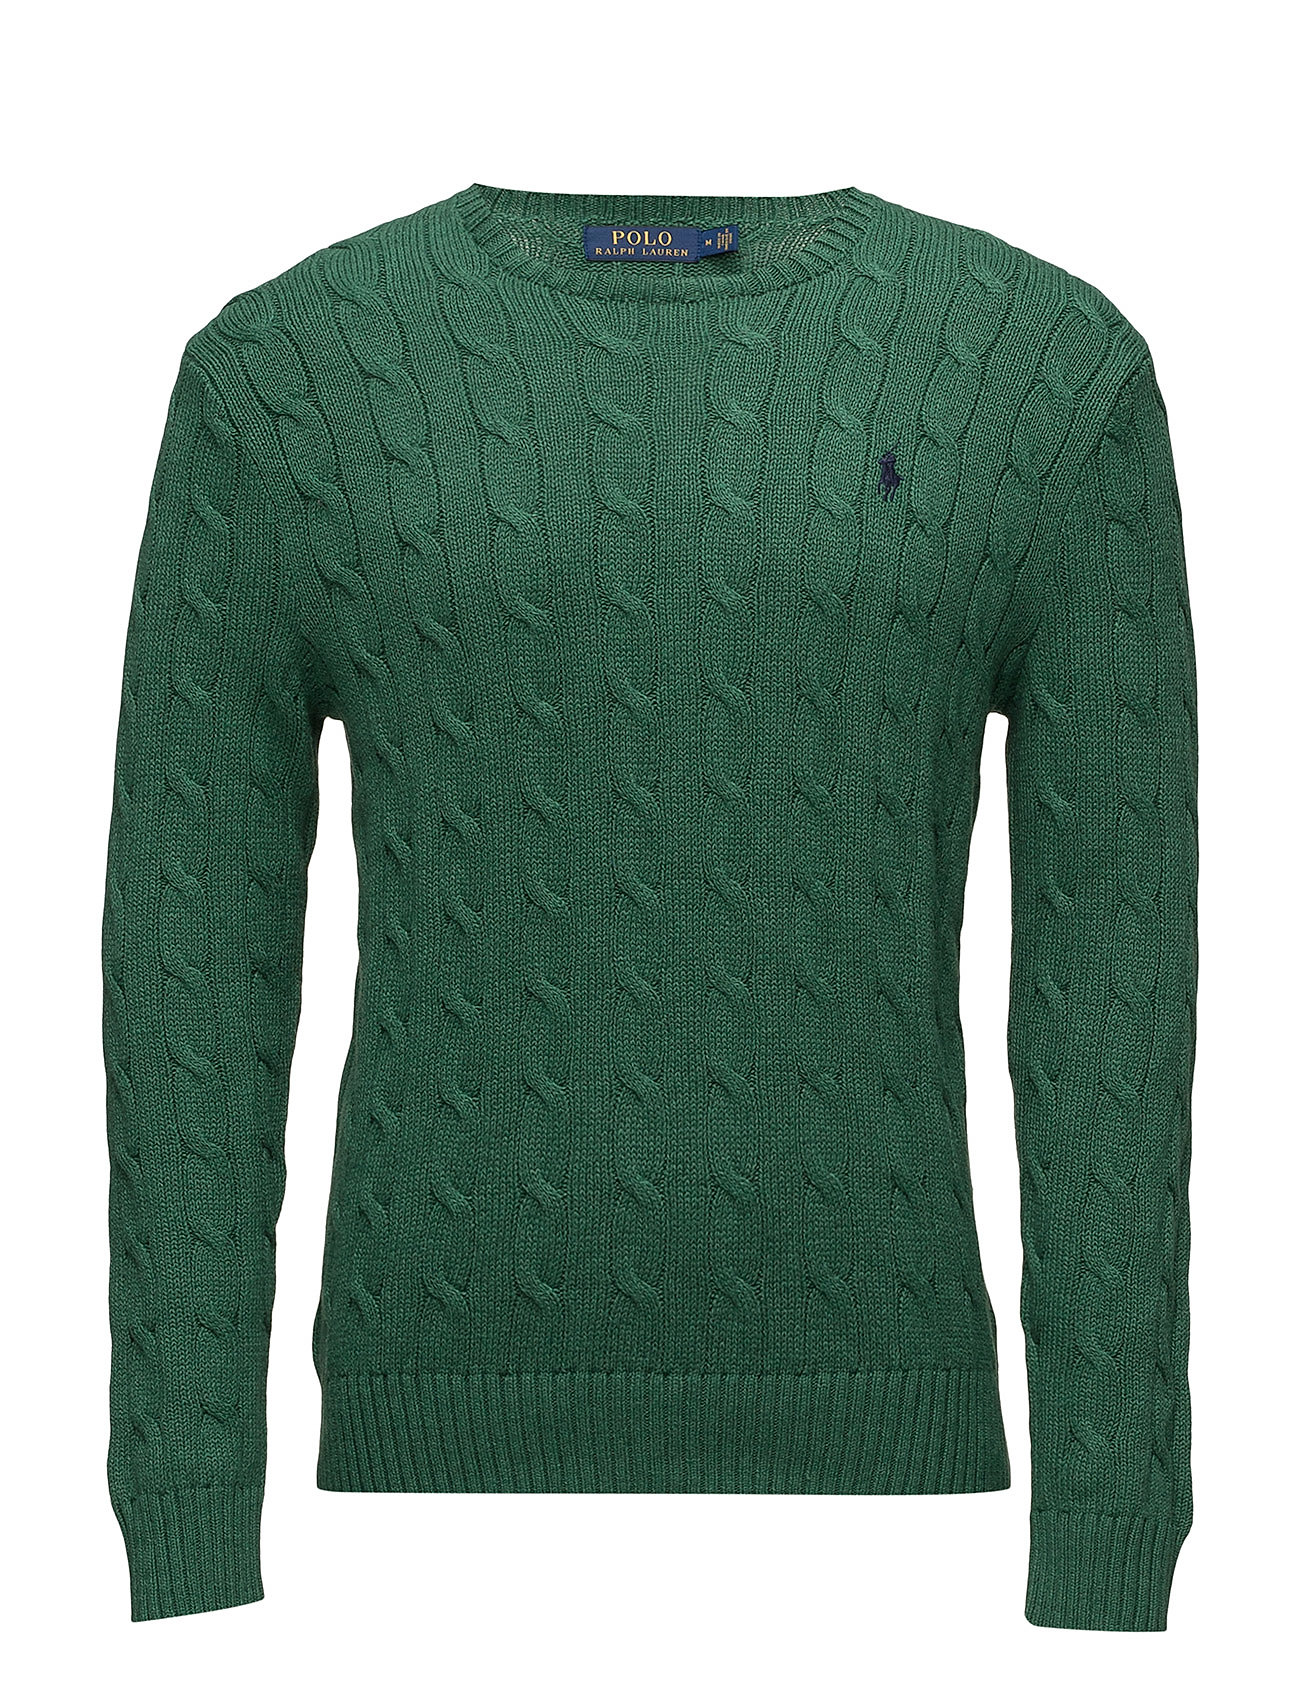 9a6b71d5fbaf Cable-knit Cotton Sweater (Verano Green Heat) (£81.25) - Polo Ralph ...